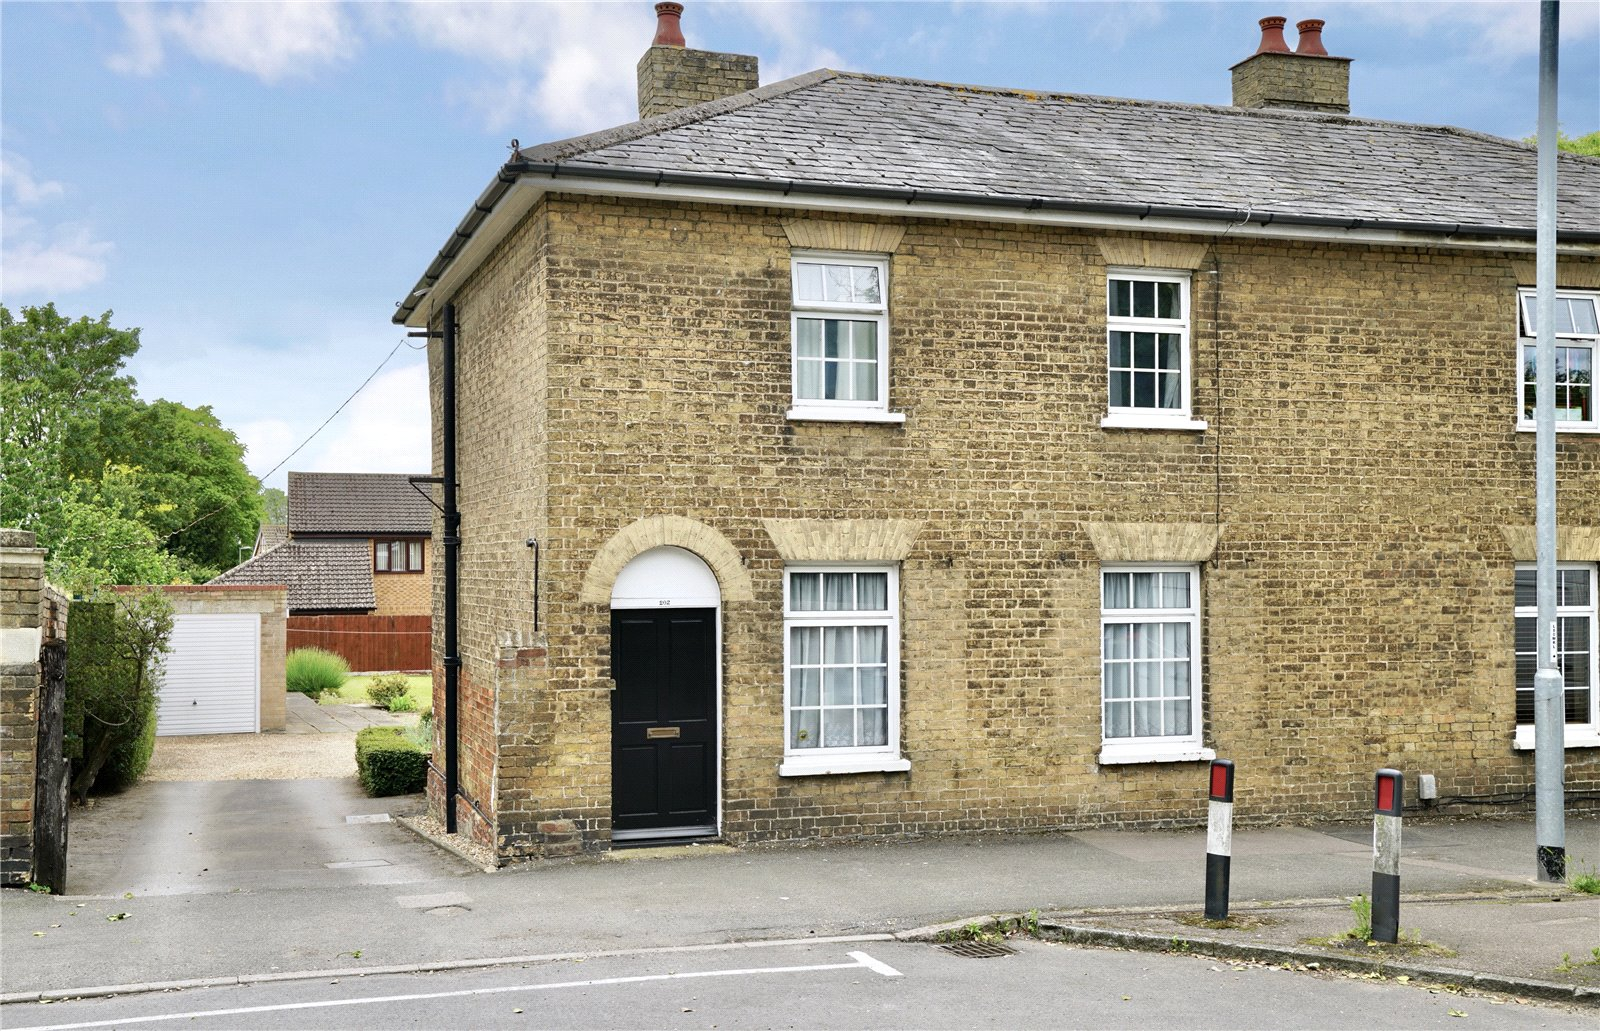 3 bed house for sale in Great North Road, Eaton Socon - Property Image 1